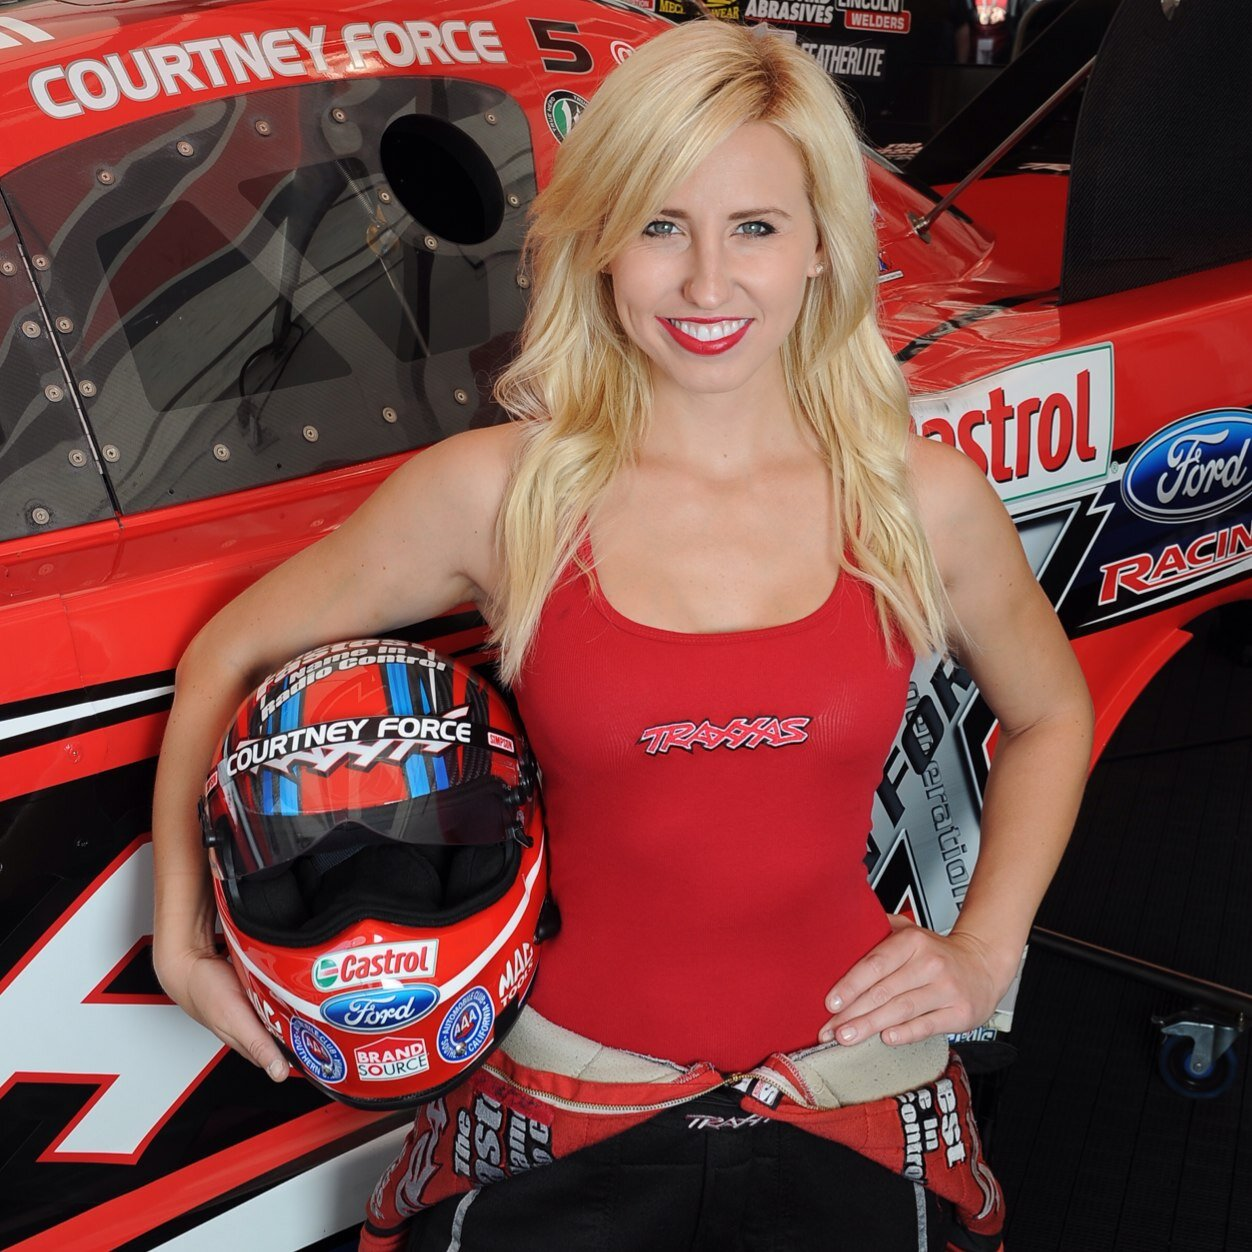 Courtney force necked — photo 10